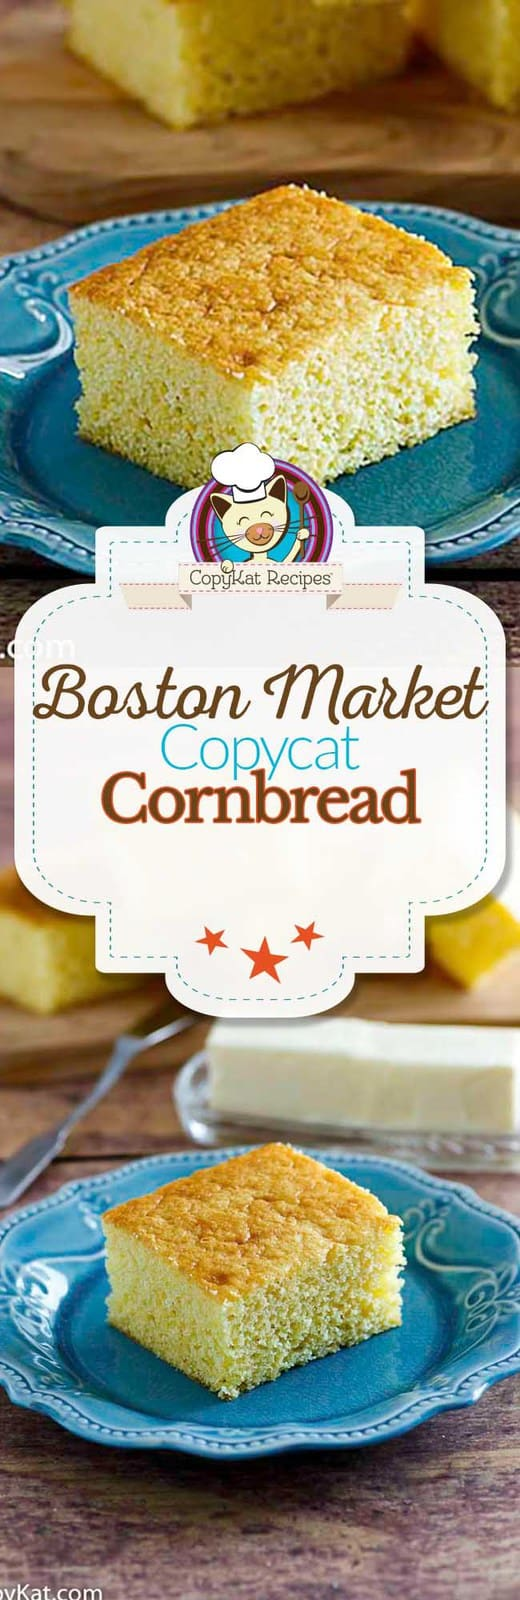 You can recreate the Boston Market Cornbread at home with this copycat recipe. #recipe #homemade #cornbread #easy #jiffy #Fromscratch